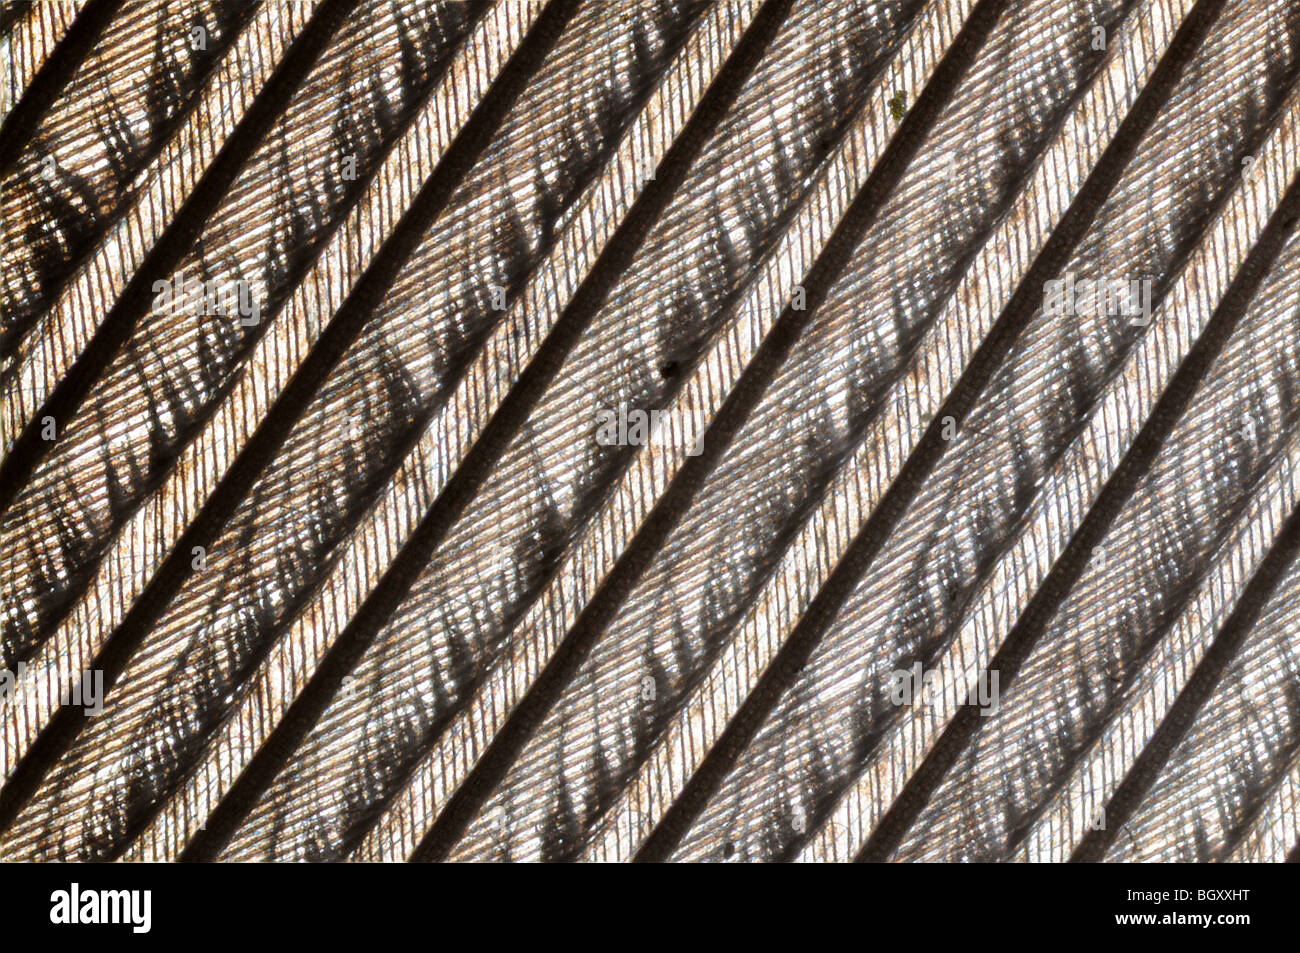 microscopic image of the patterns made by a pigeon feather - Stock Image